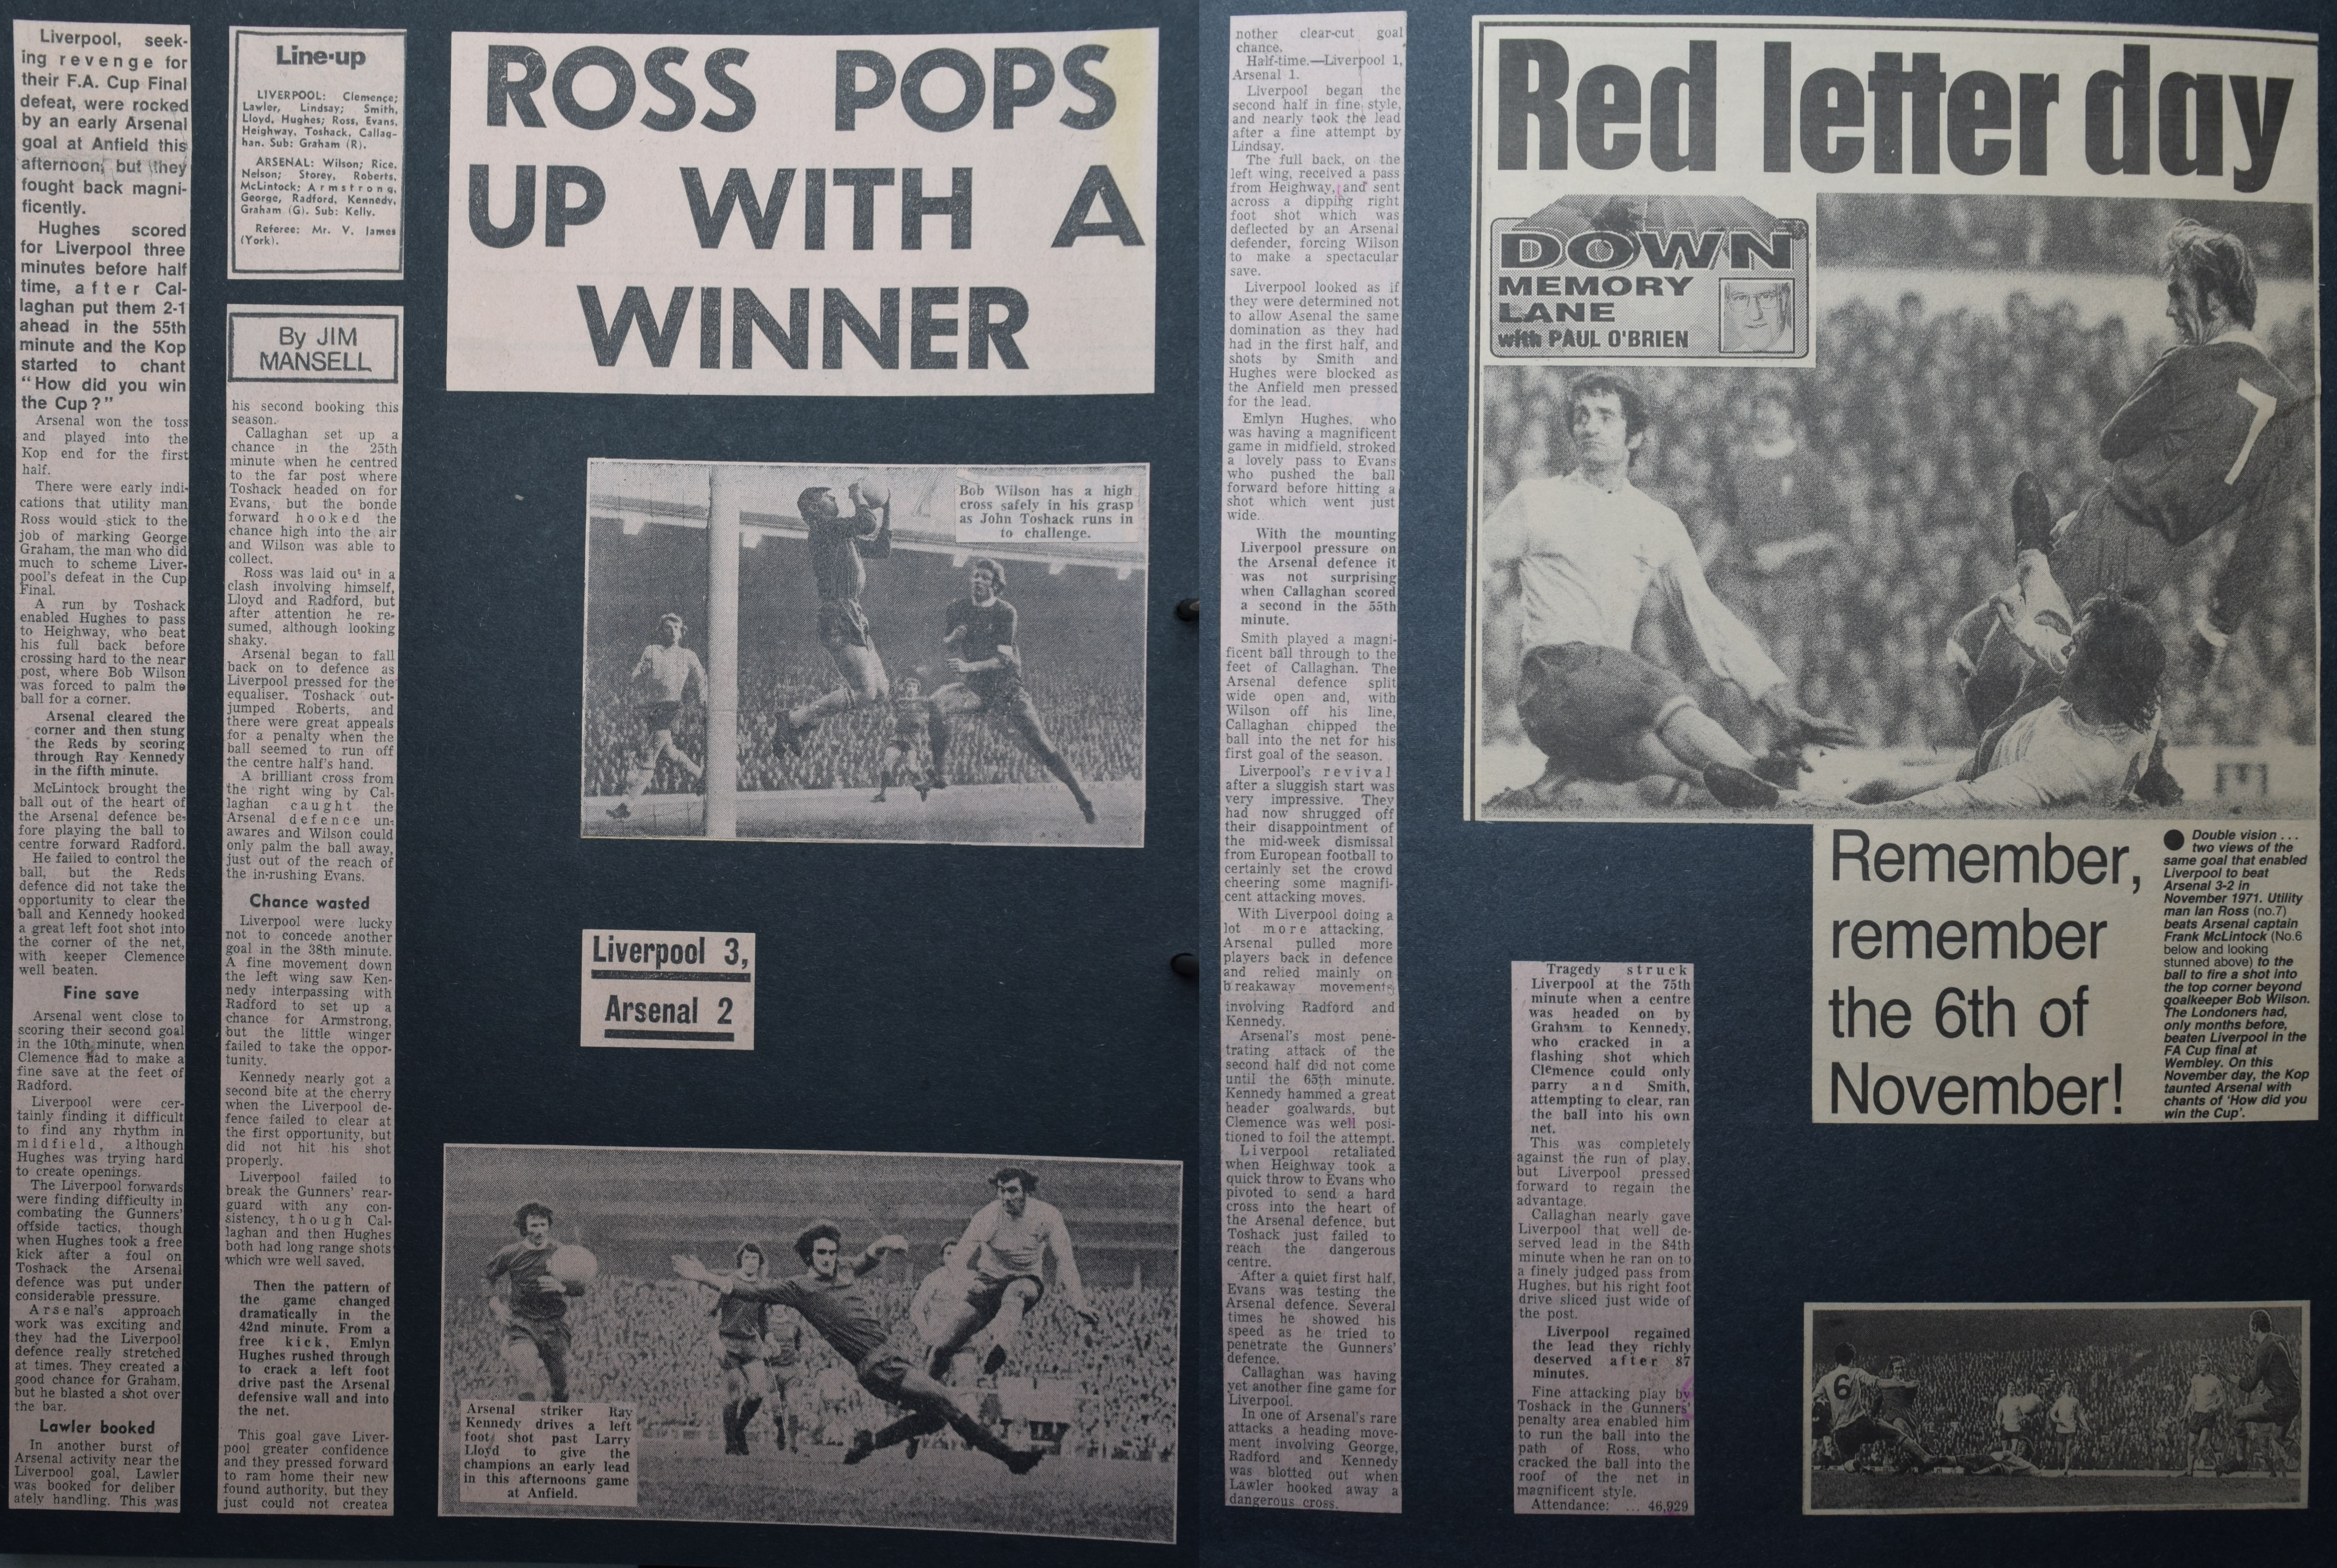 Ross pops up with a winner - 6 November 1971